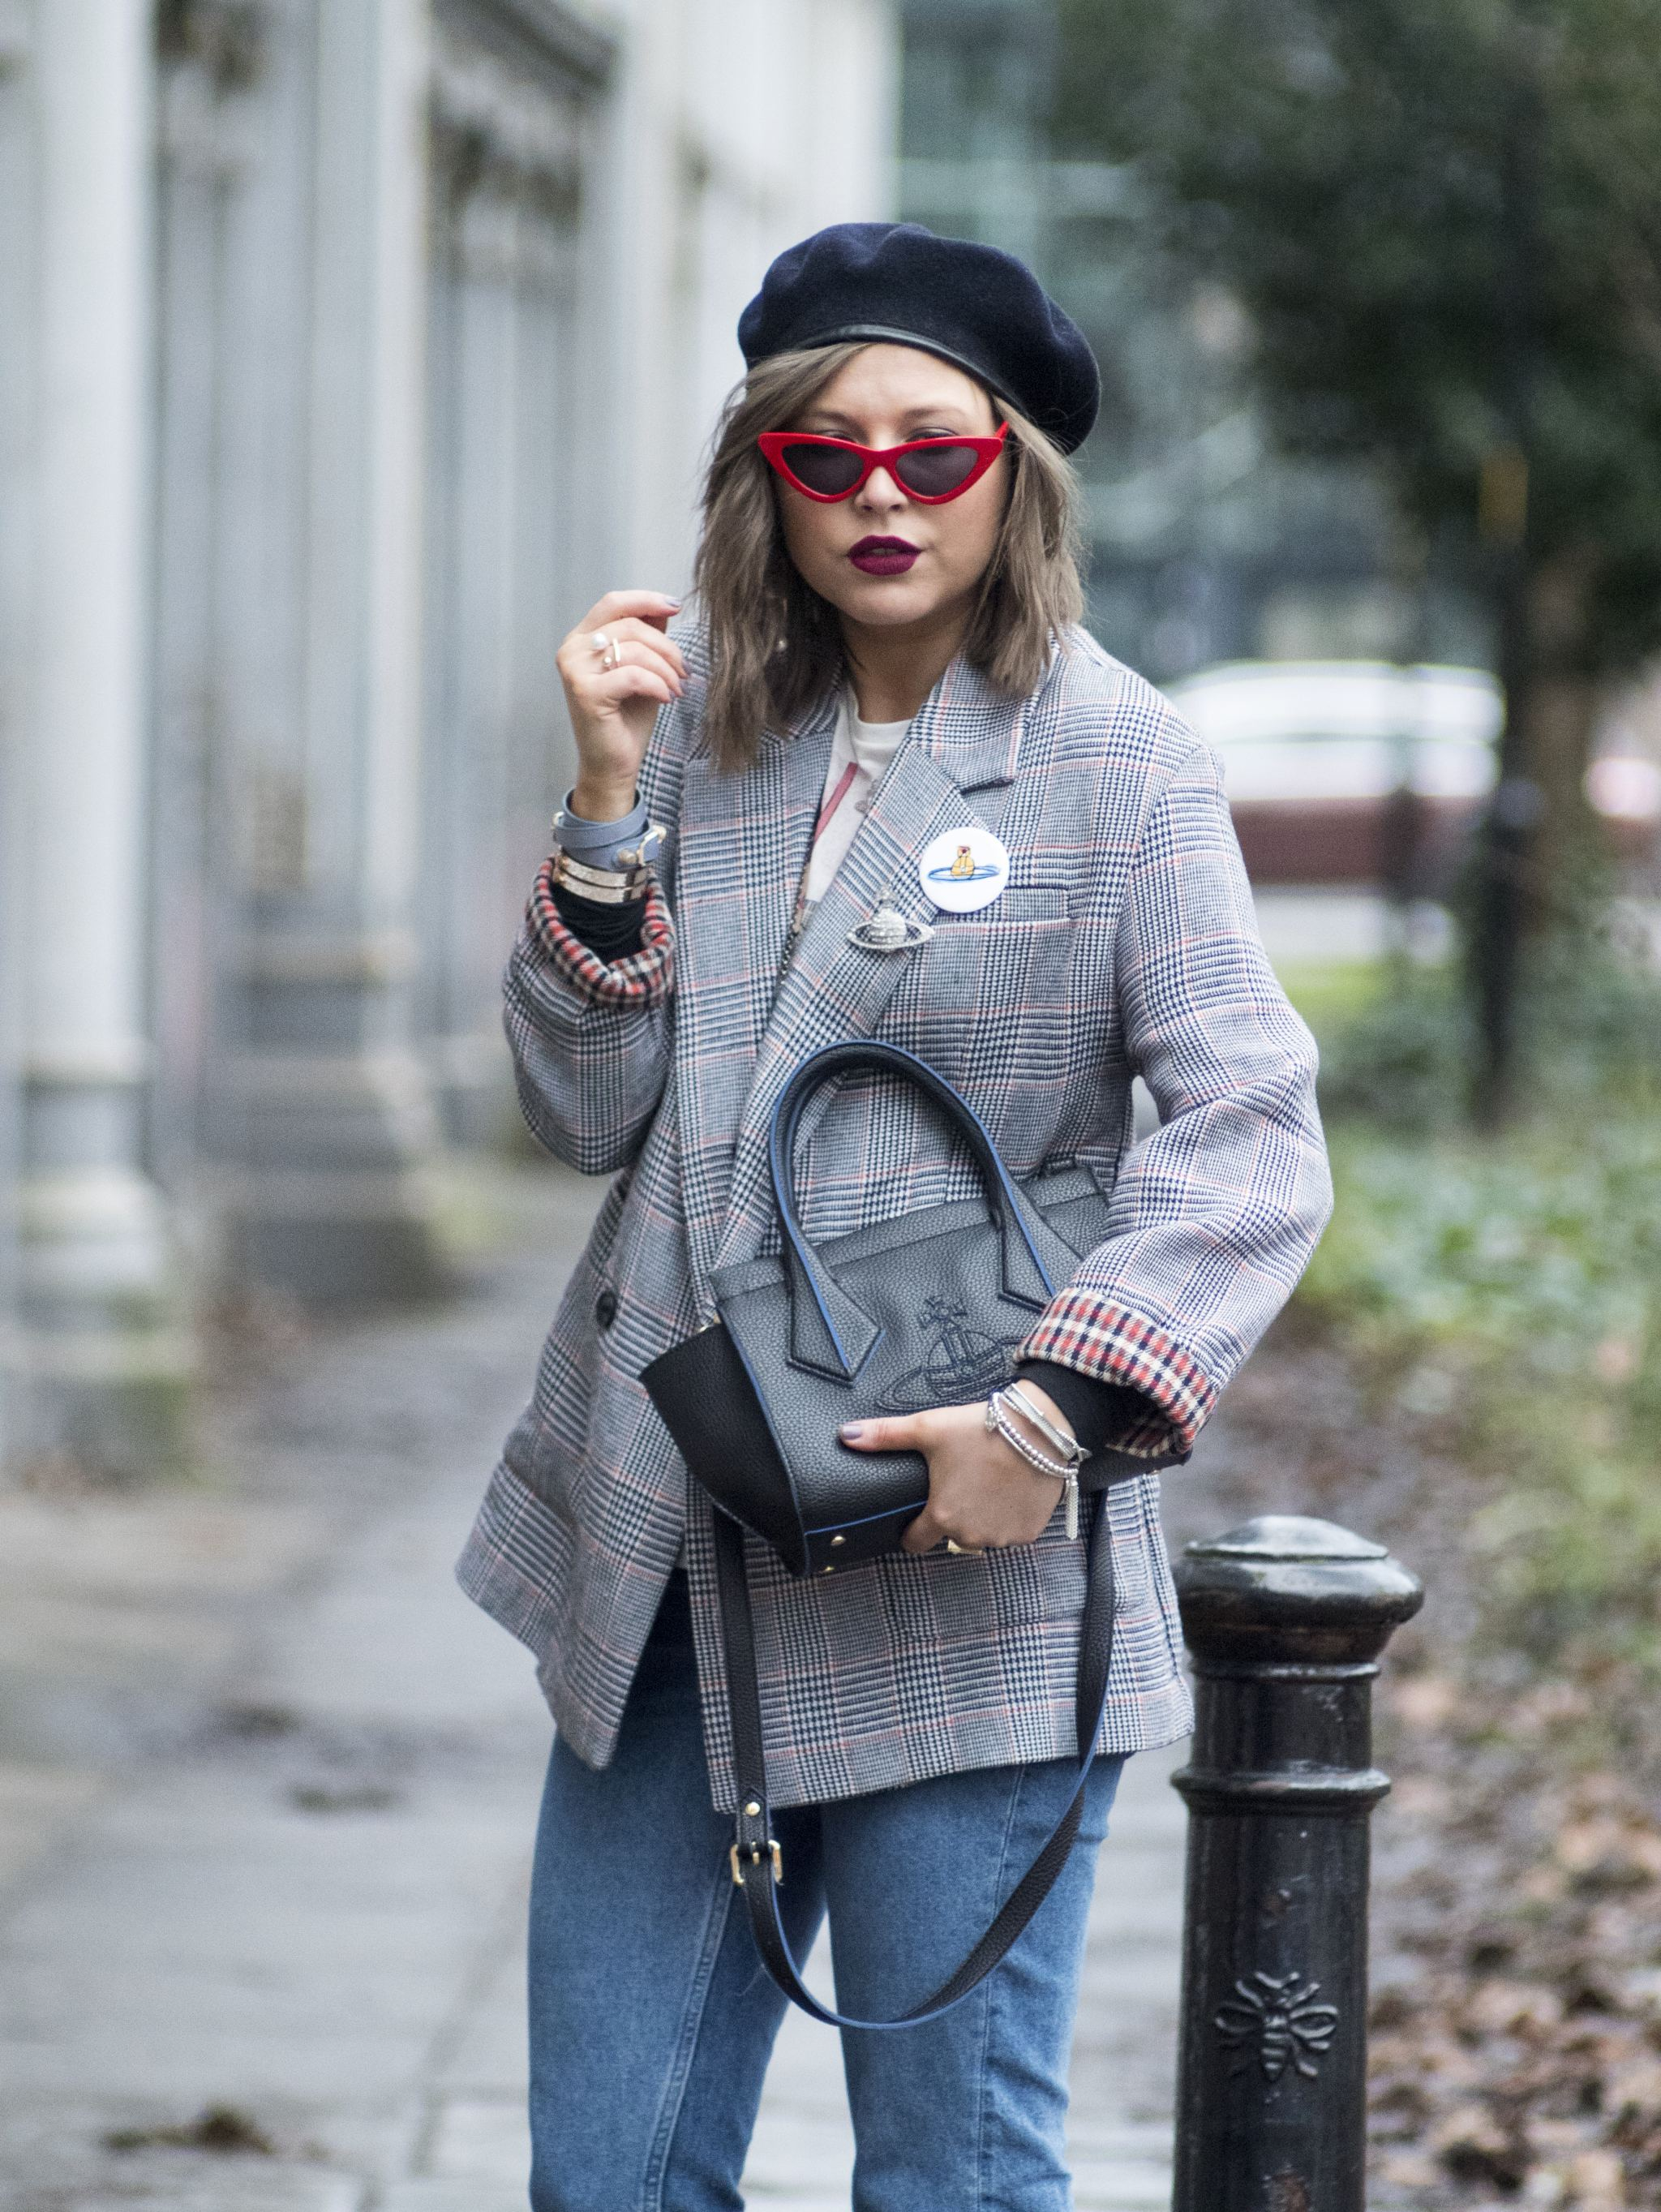 manchester fashion blogger, check blazer , tiny sunglasses, vivinne westwood bag, beret, check blazer, zara blazer